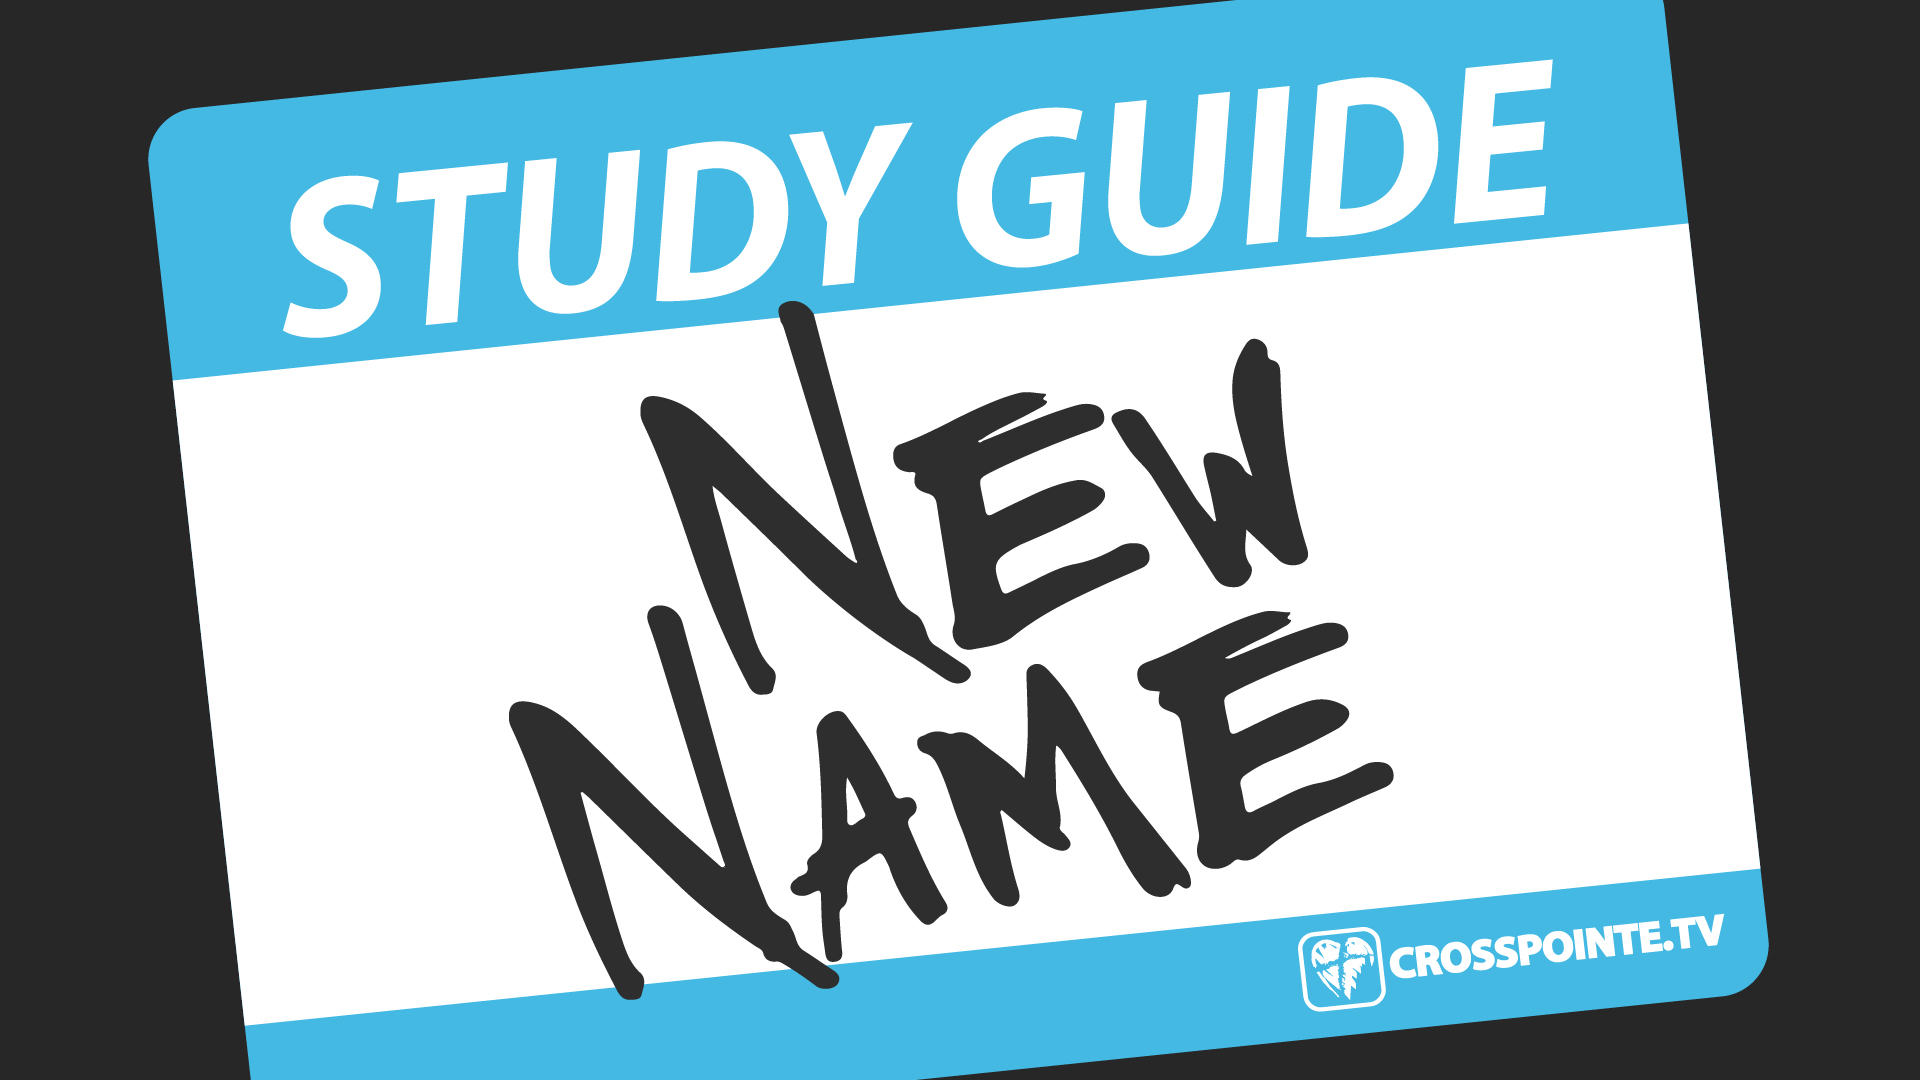 Download the 4 week study guide for the New Name series here!